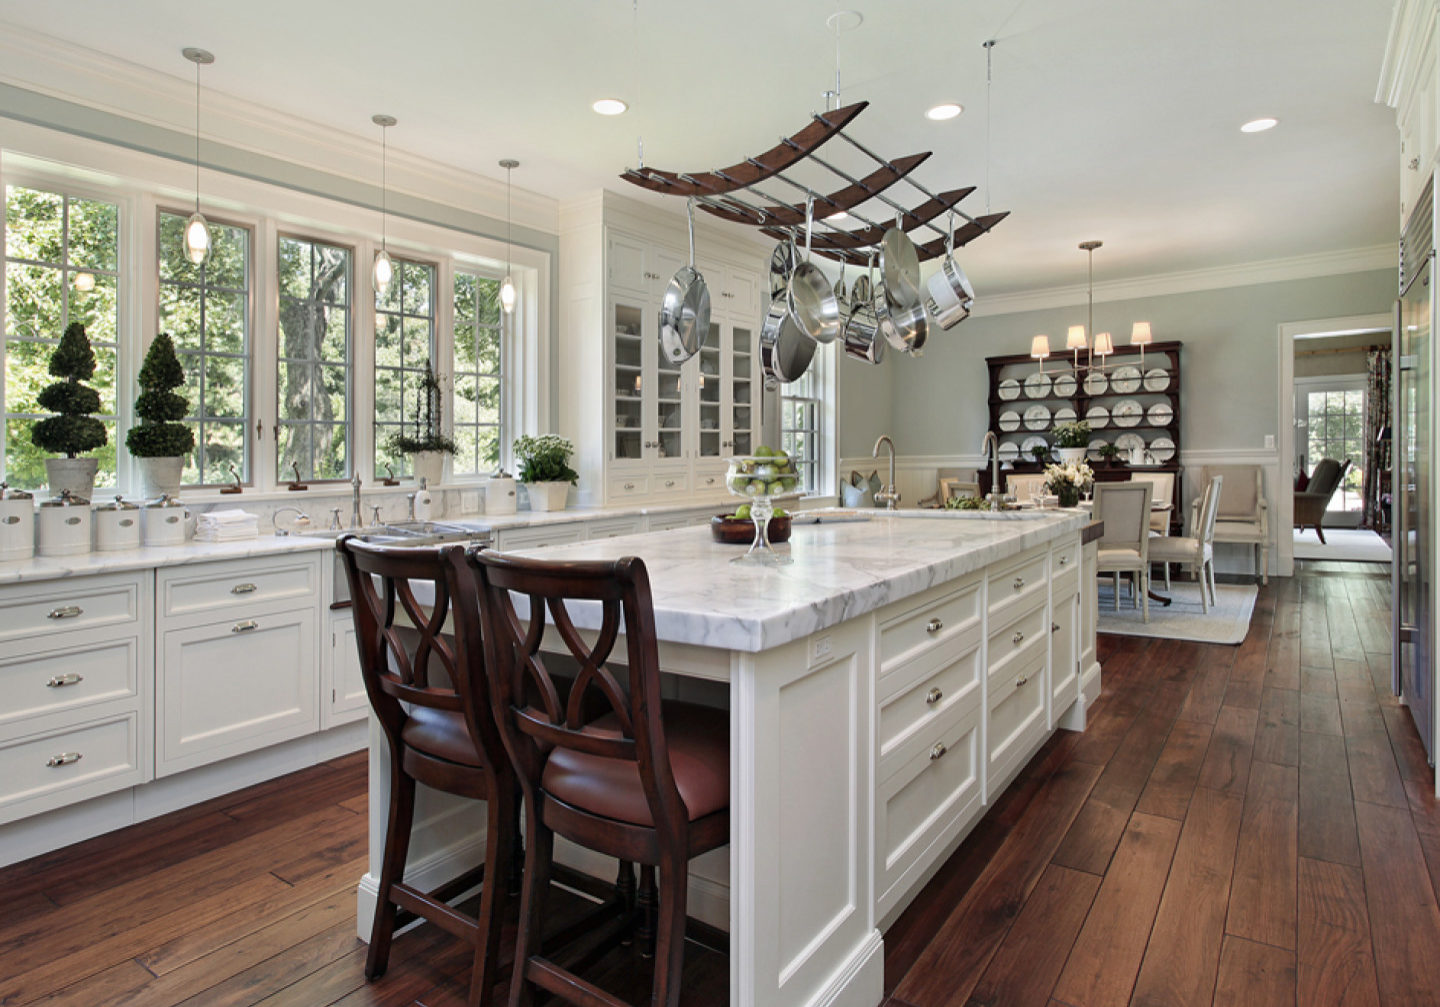 Kitchen-in-luxury-home-with-wh-16568375